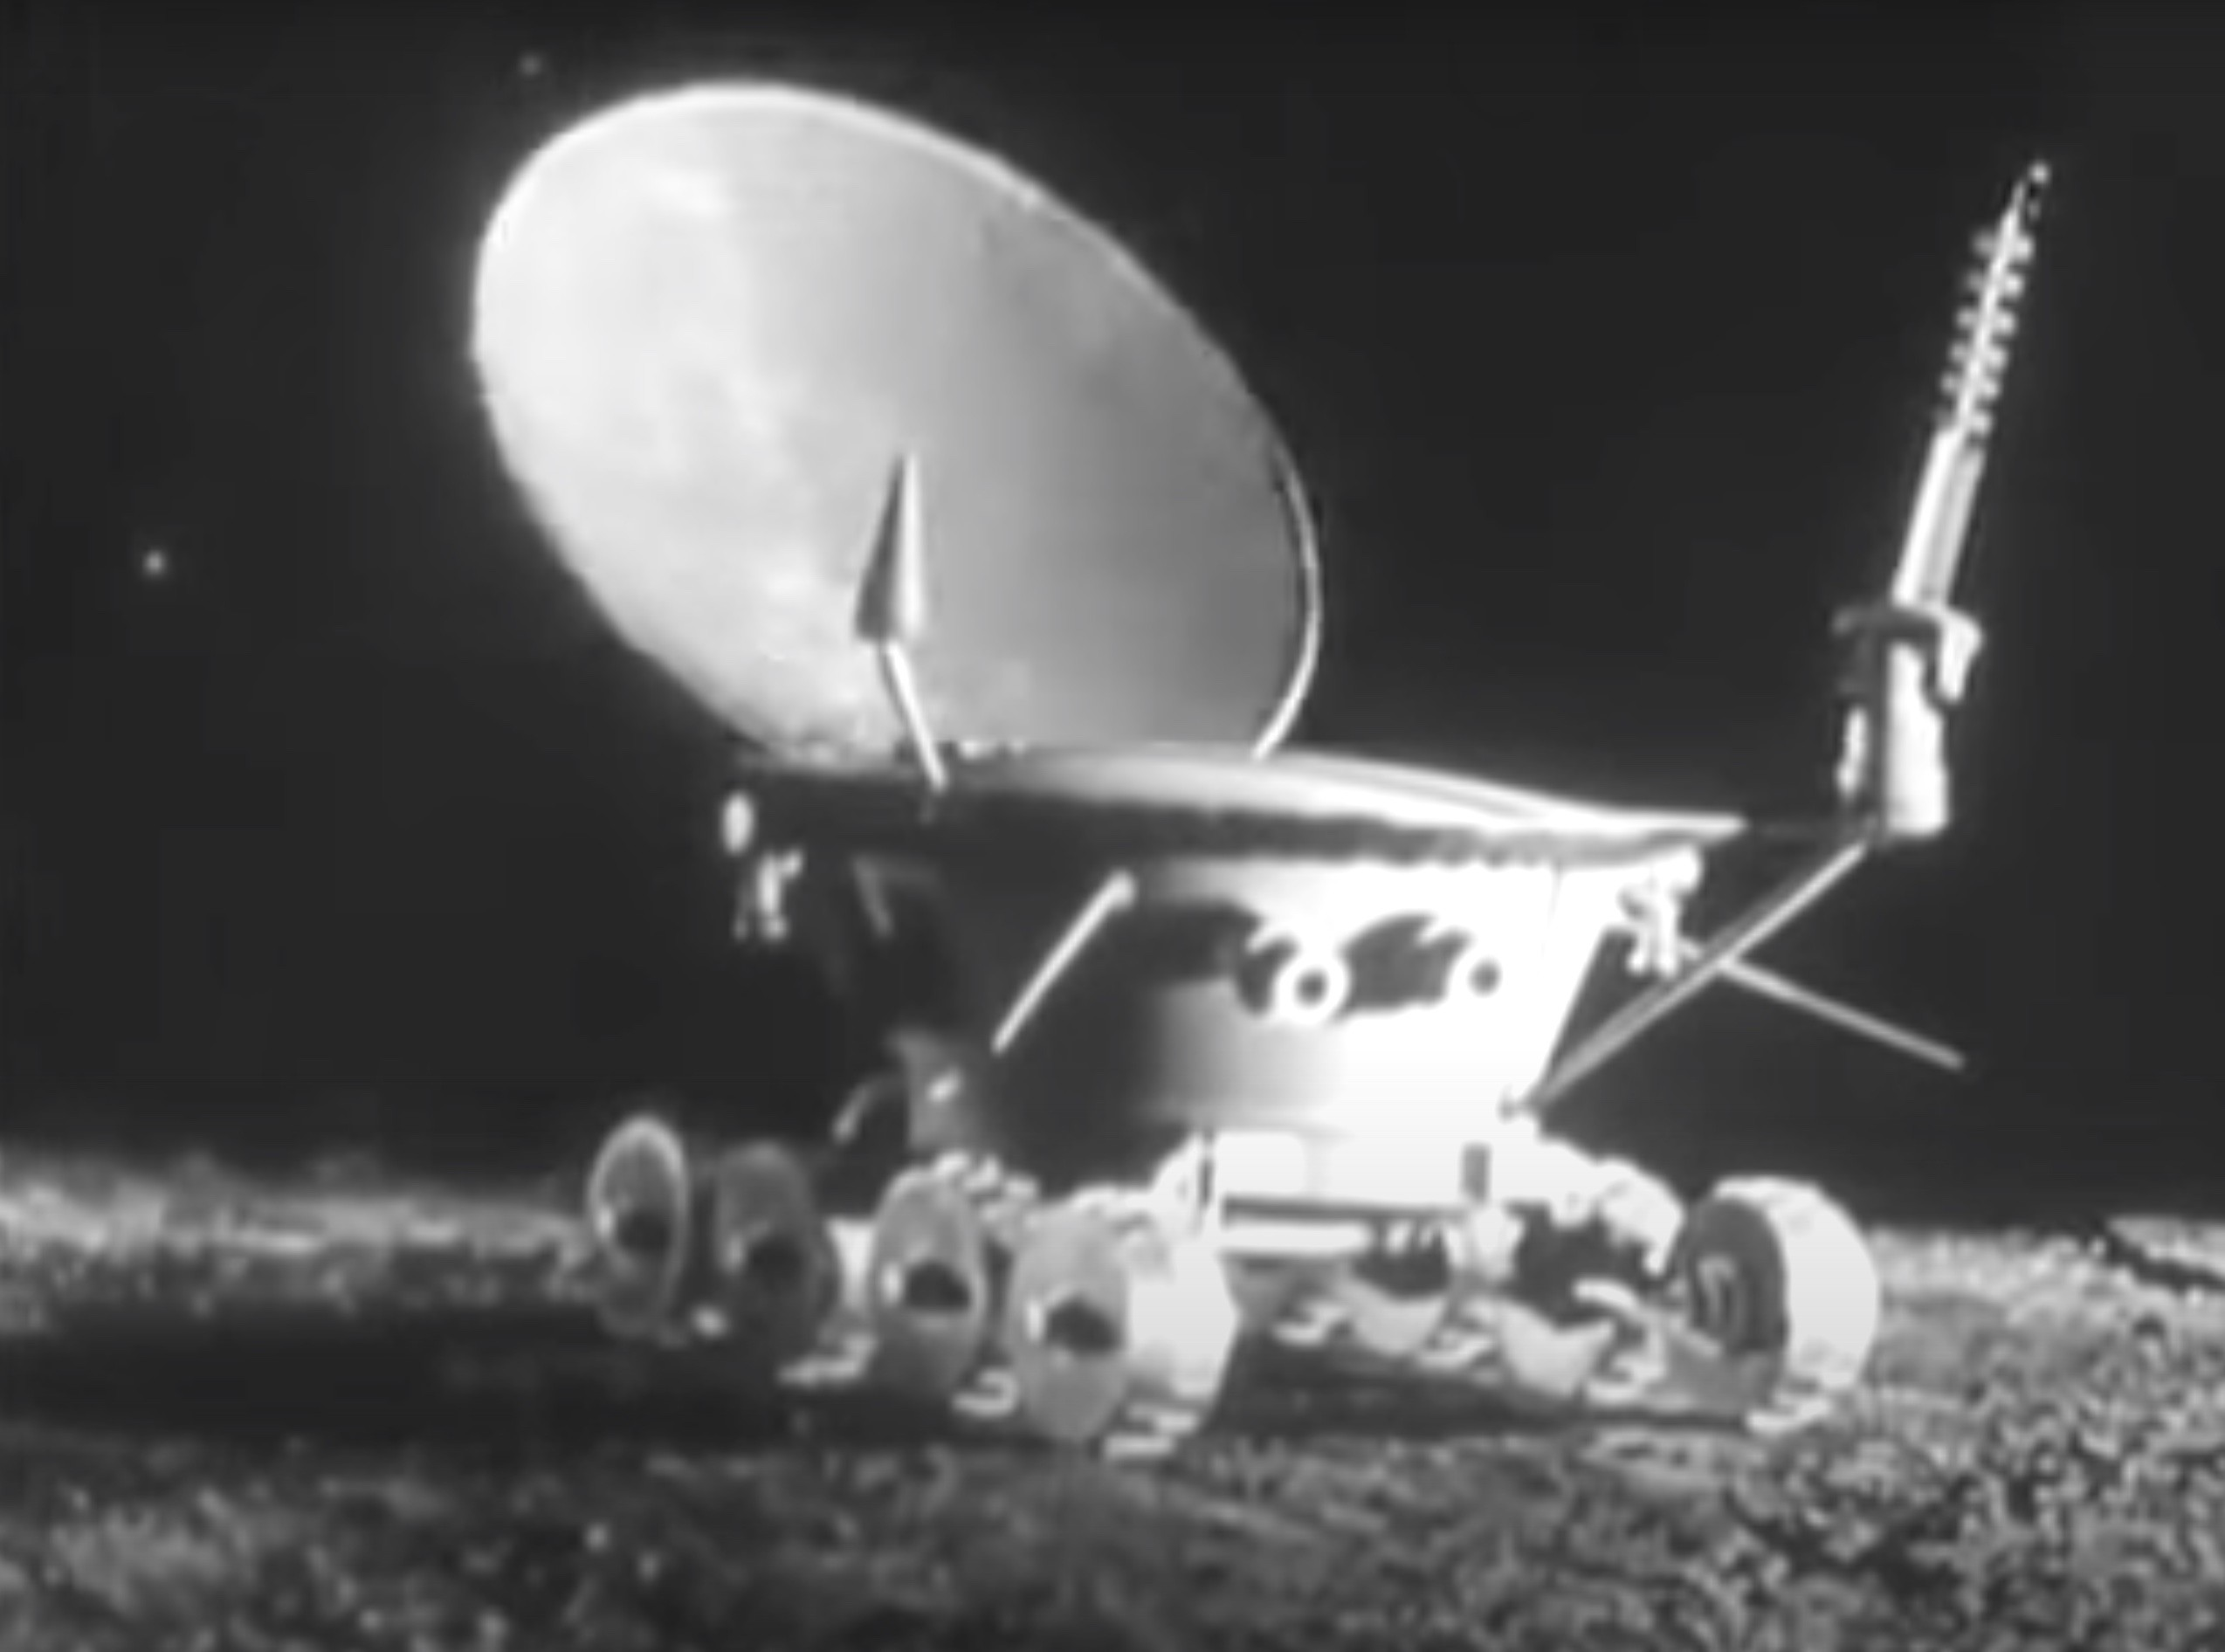 Russian Space Program: News & Discussion #4 - Page 19 Lunokhod-1-the-unsung-hero-rover-of-the-ussr-drove-on-the-moon-before-america-got-there_14